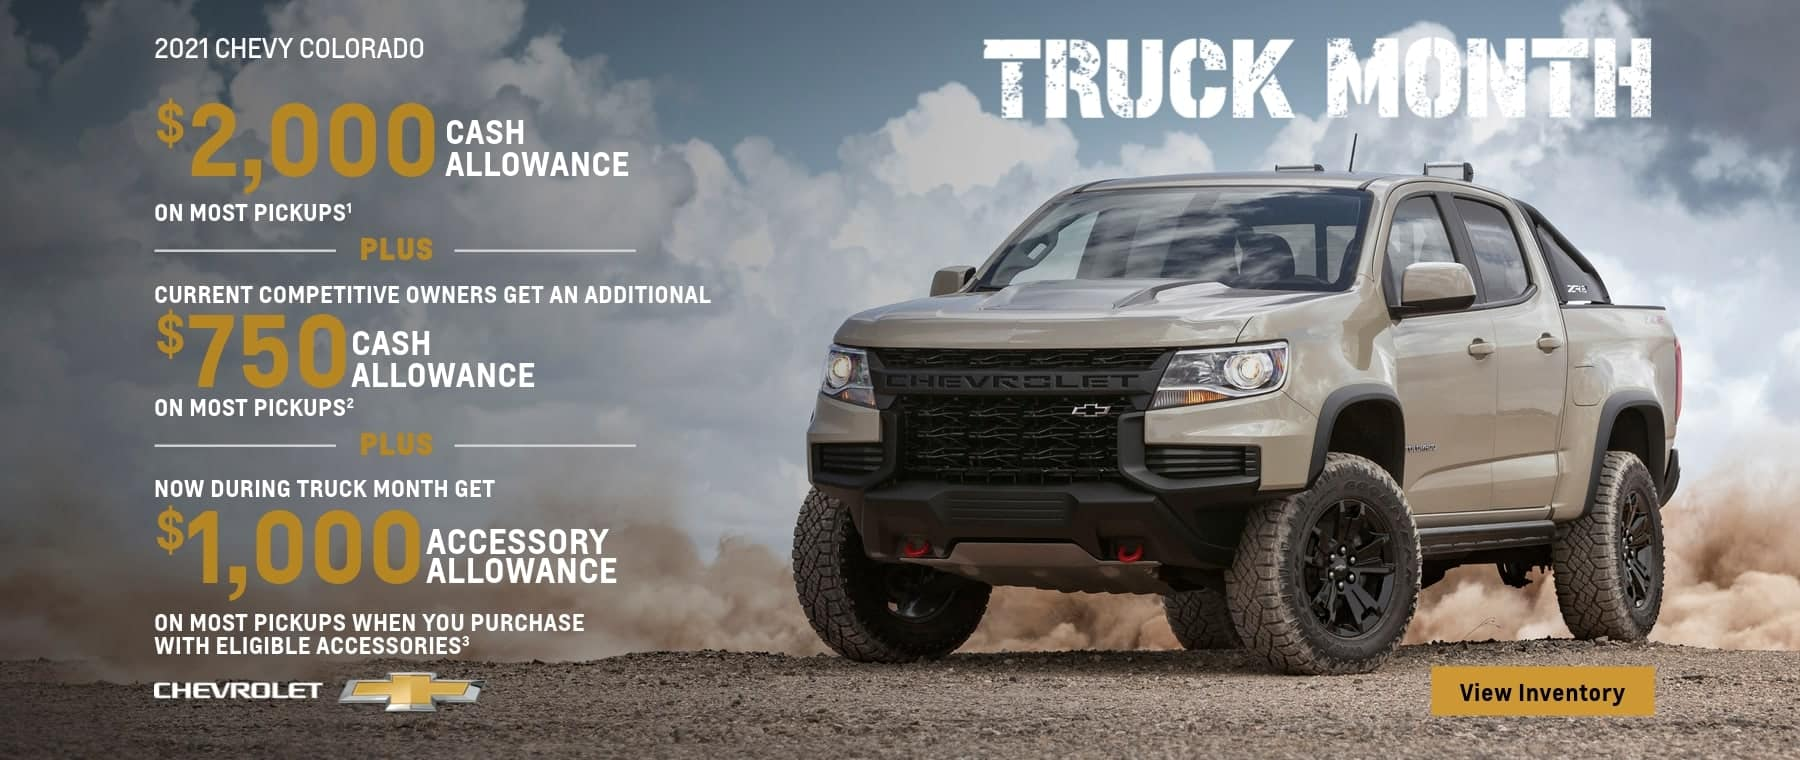 $3,000 cash allowance on most pickups plus current competitive owners get an additional $750 cash allowance on most pickups plus current competitive owners get an additional $750 cash allowance on most pickups plus now during truck month get $1,000 accessory allowance on most pickups when you purchase with eligible accessories.